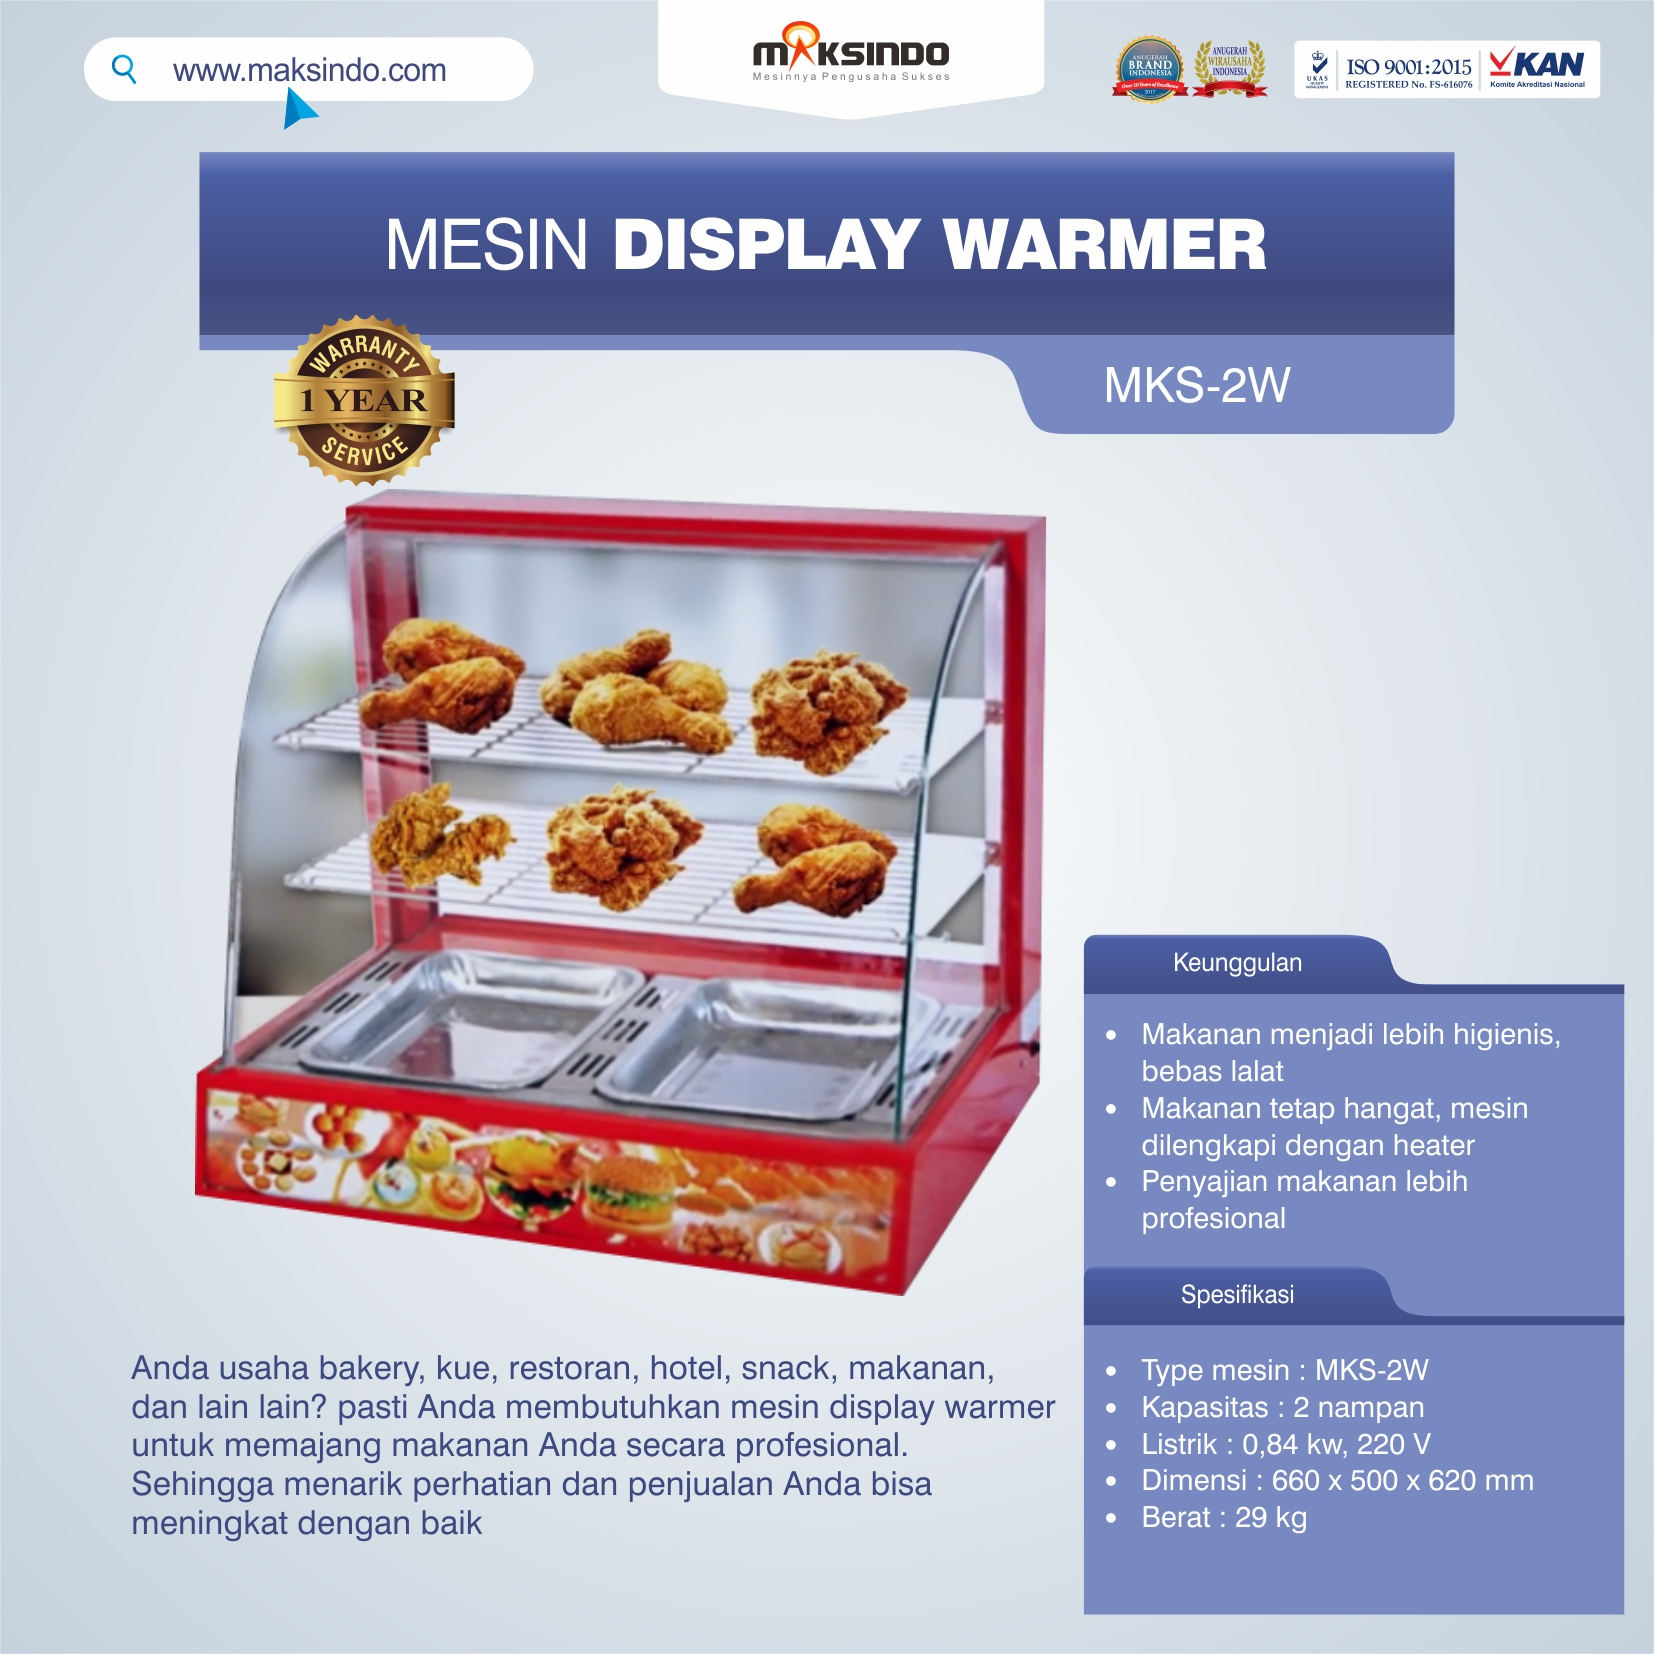 MKS-2W Mesin Display Warmer